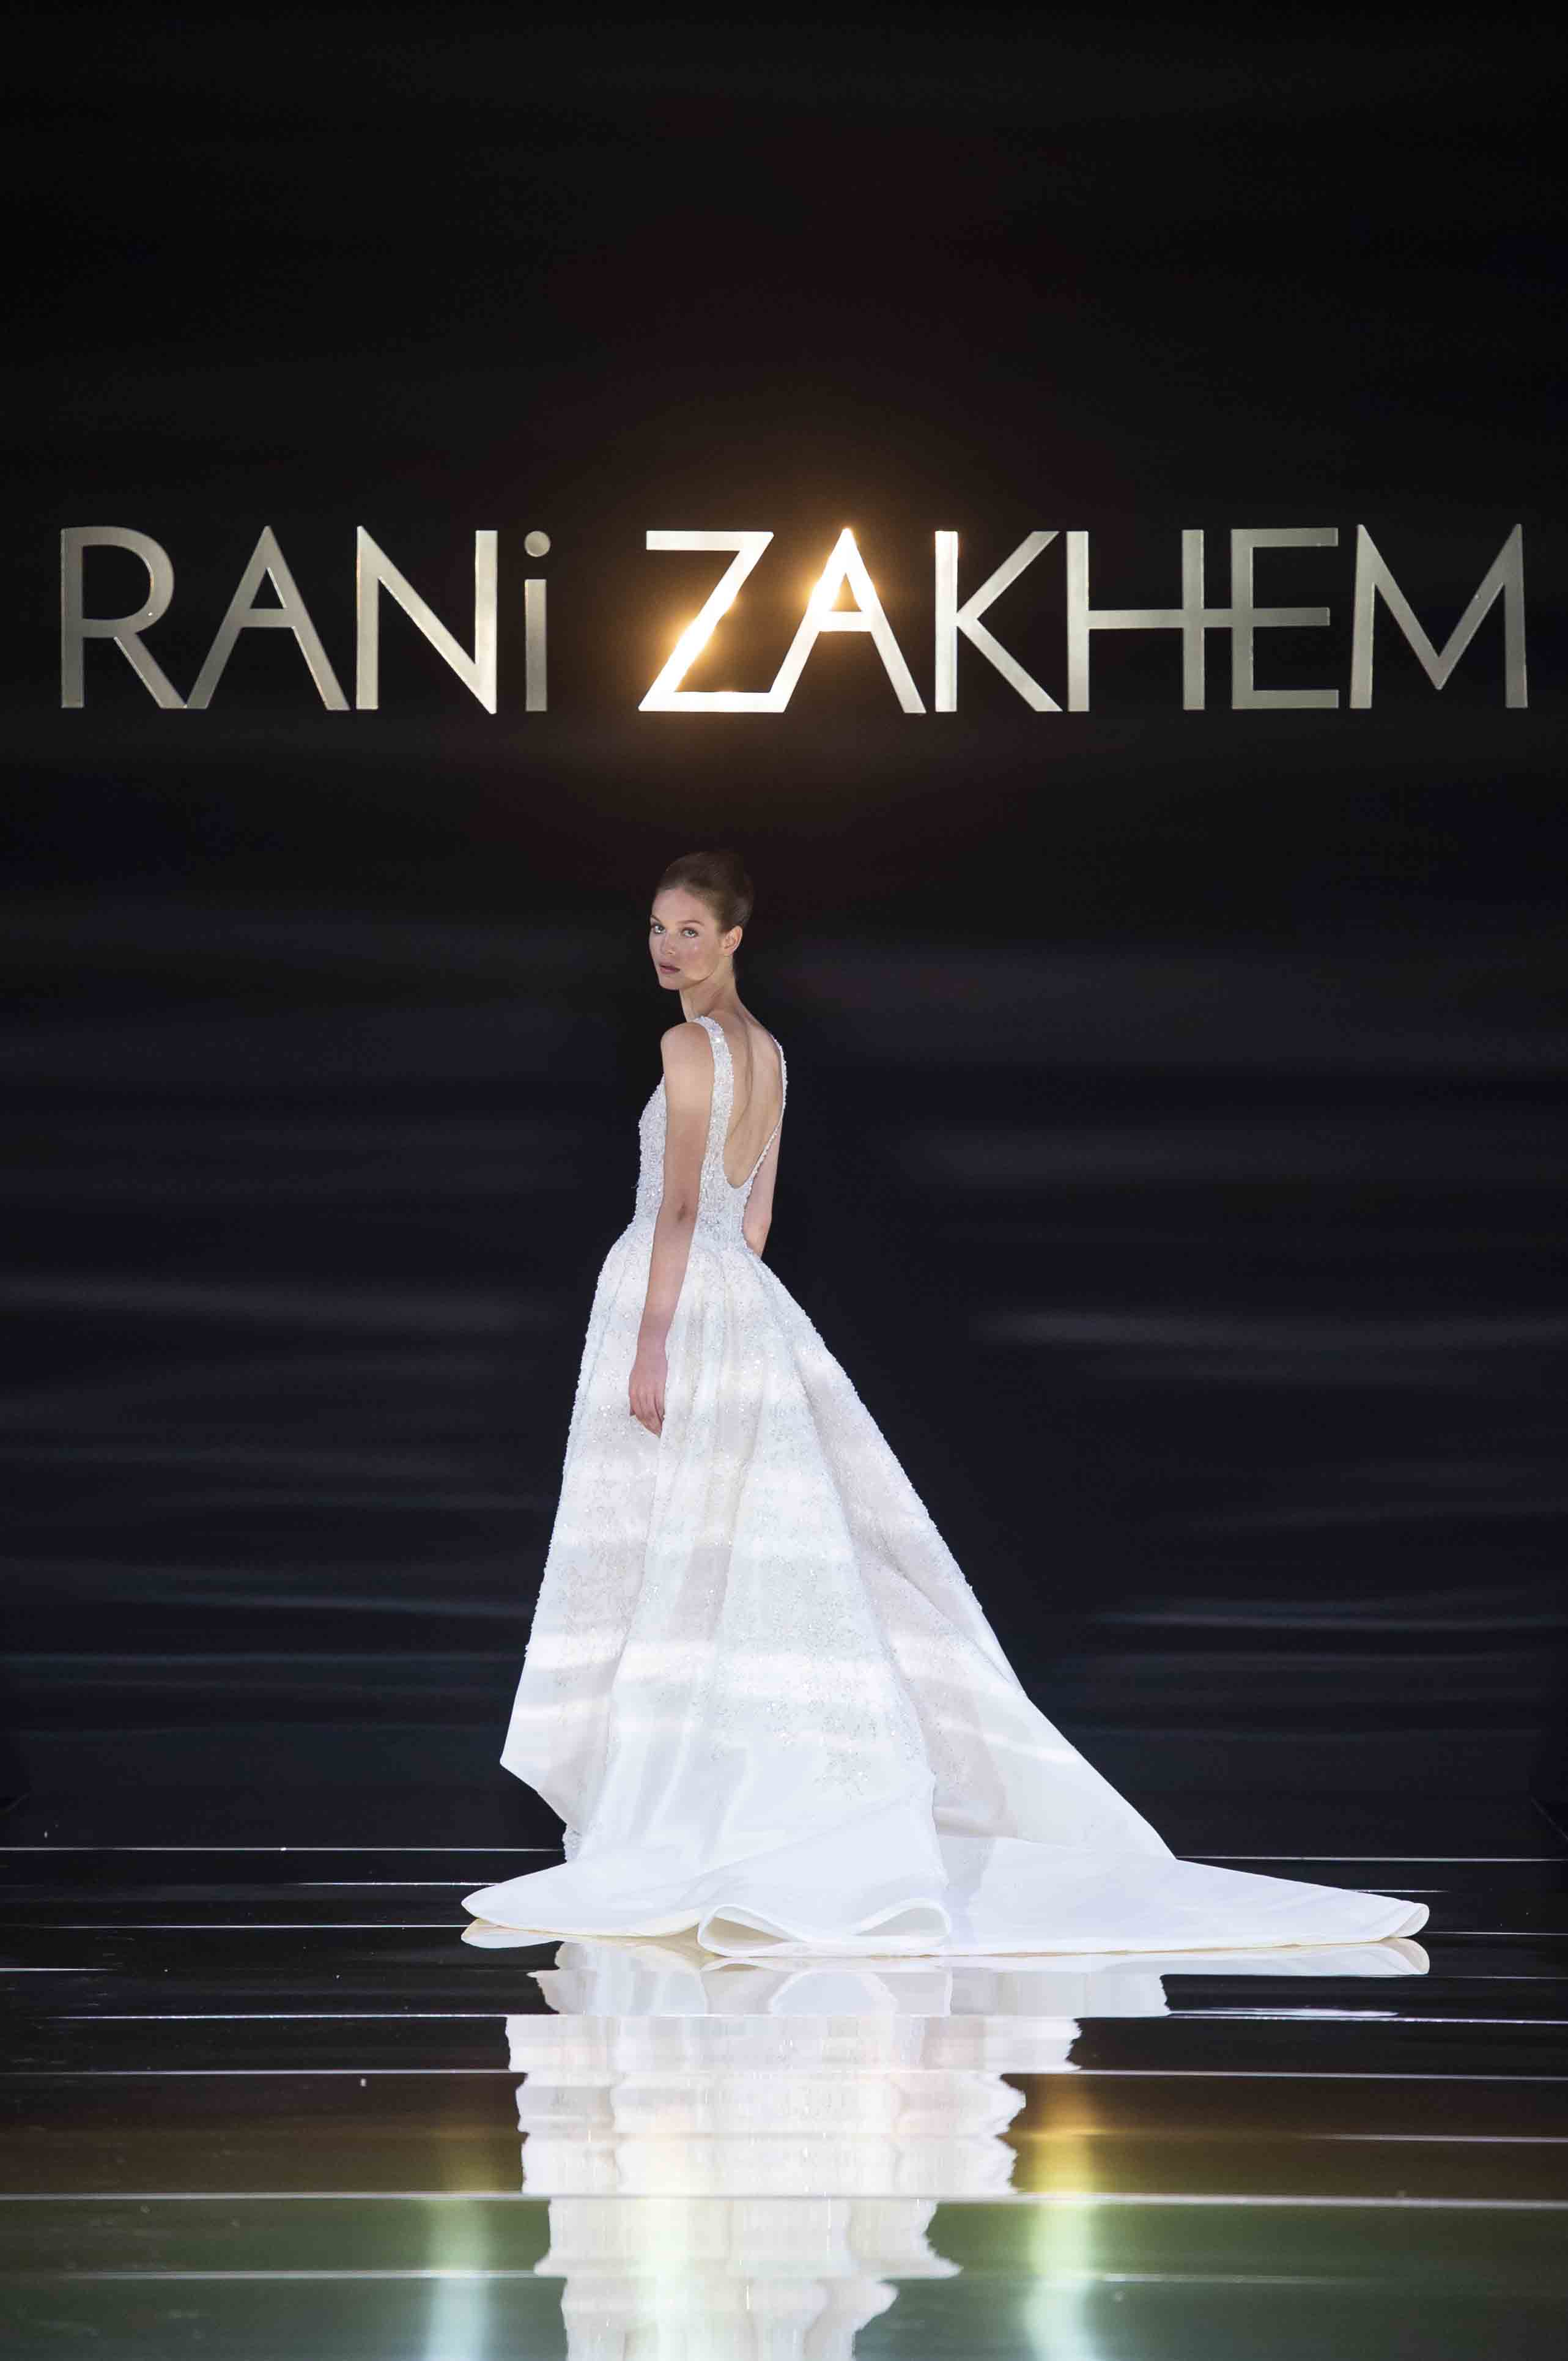 Rani zakhem couture collection automne hiver fall winter 2018 2019 pfw © imaxtree (29)